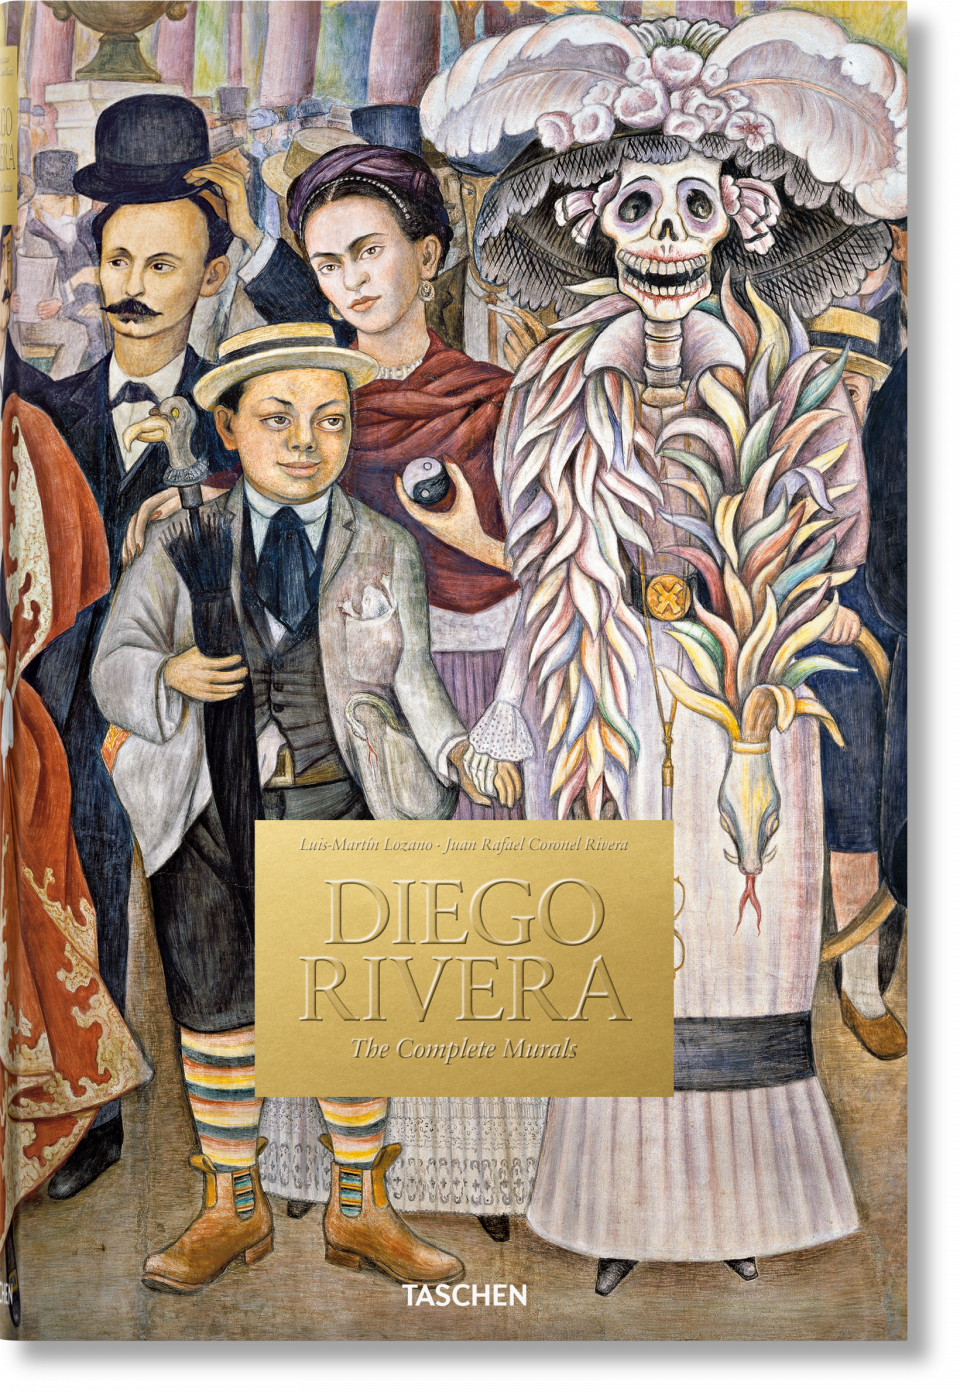 A look at the life and times of diego rivera